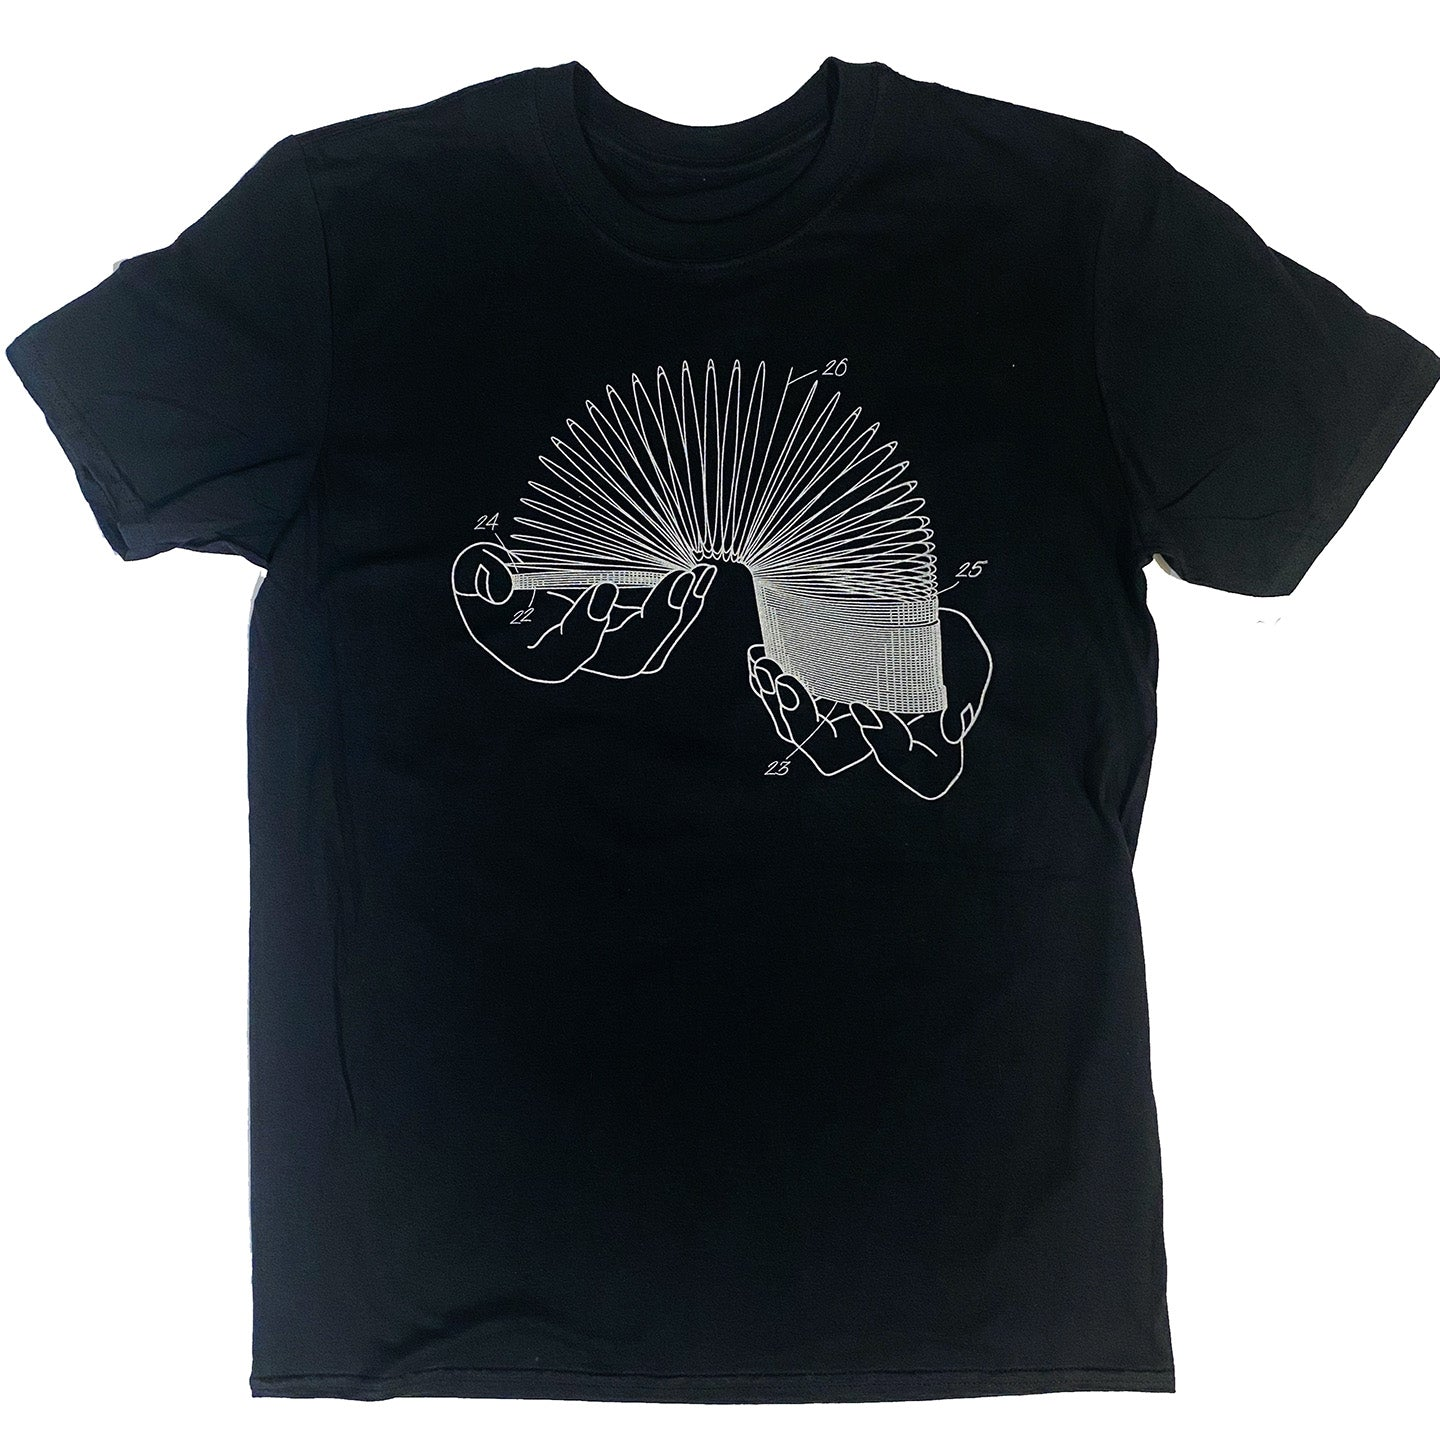 Slinky Patent T-Shirt - Black with Metallic Silver Ink